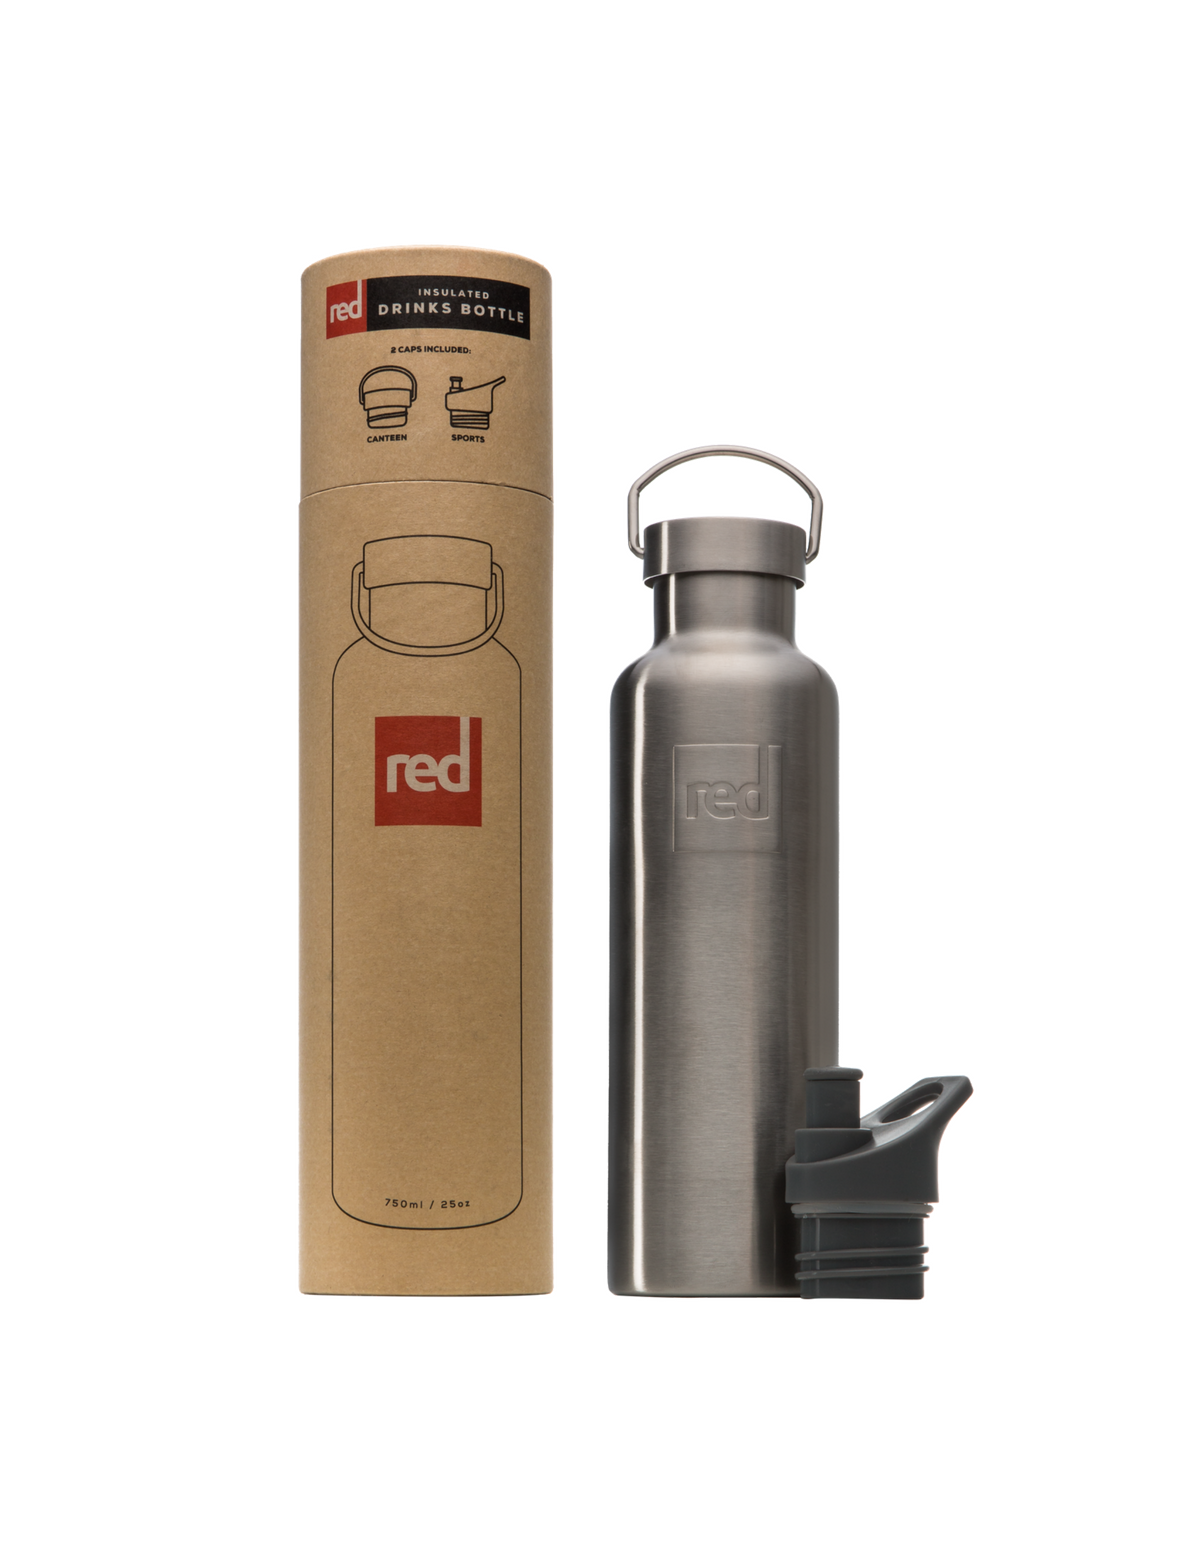 Red Originals Insulated Drinks Bottle.